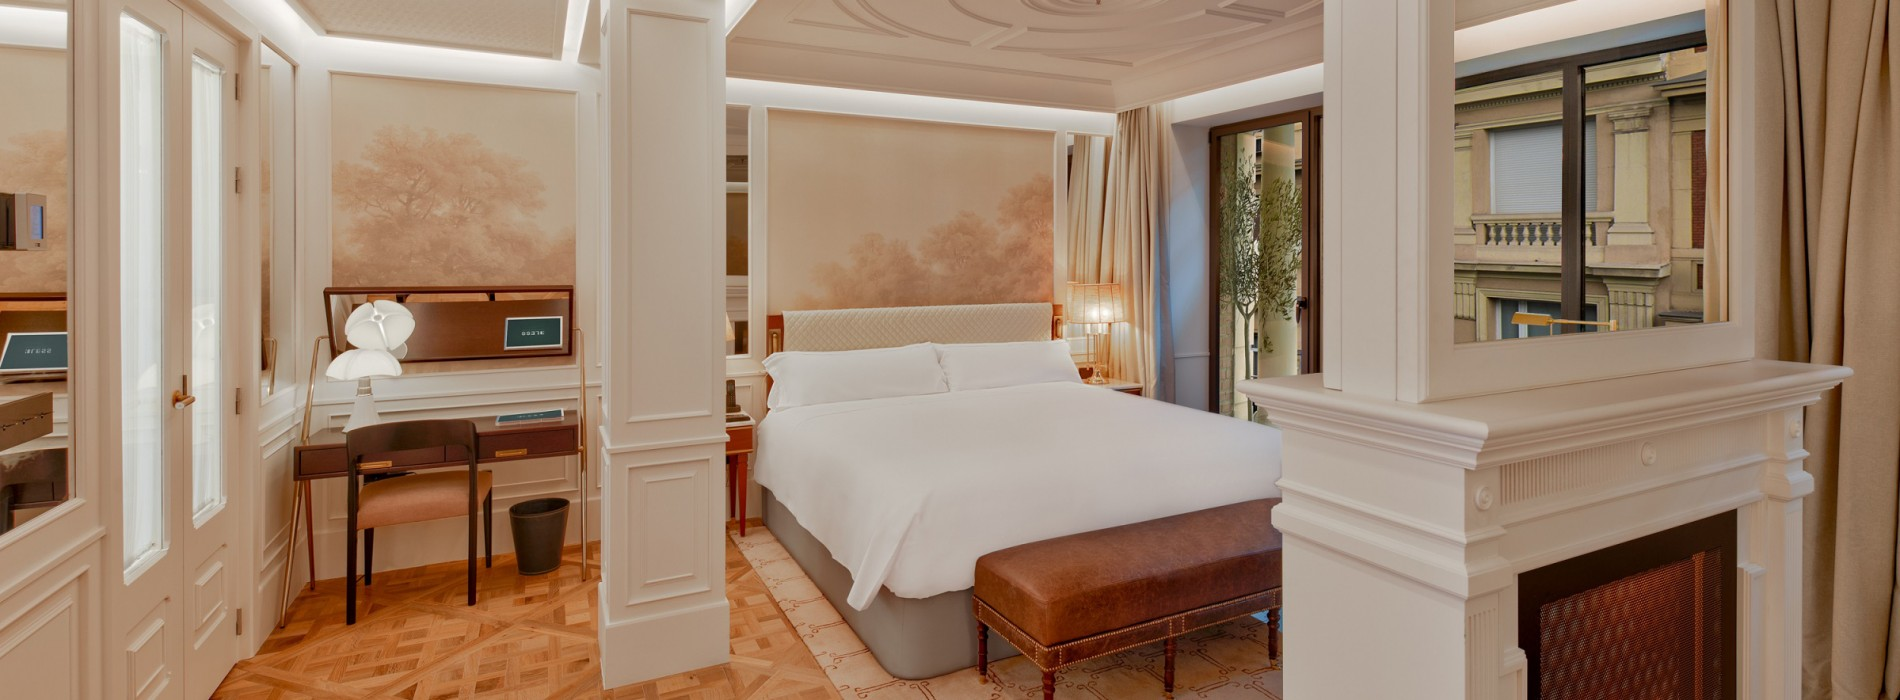 BLESS Collection Hotels pioneers Hedonistic Luxury to introduce exquisite experiences for luxury travellers